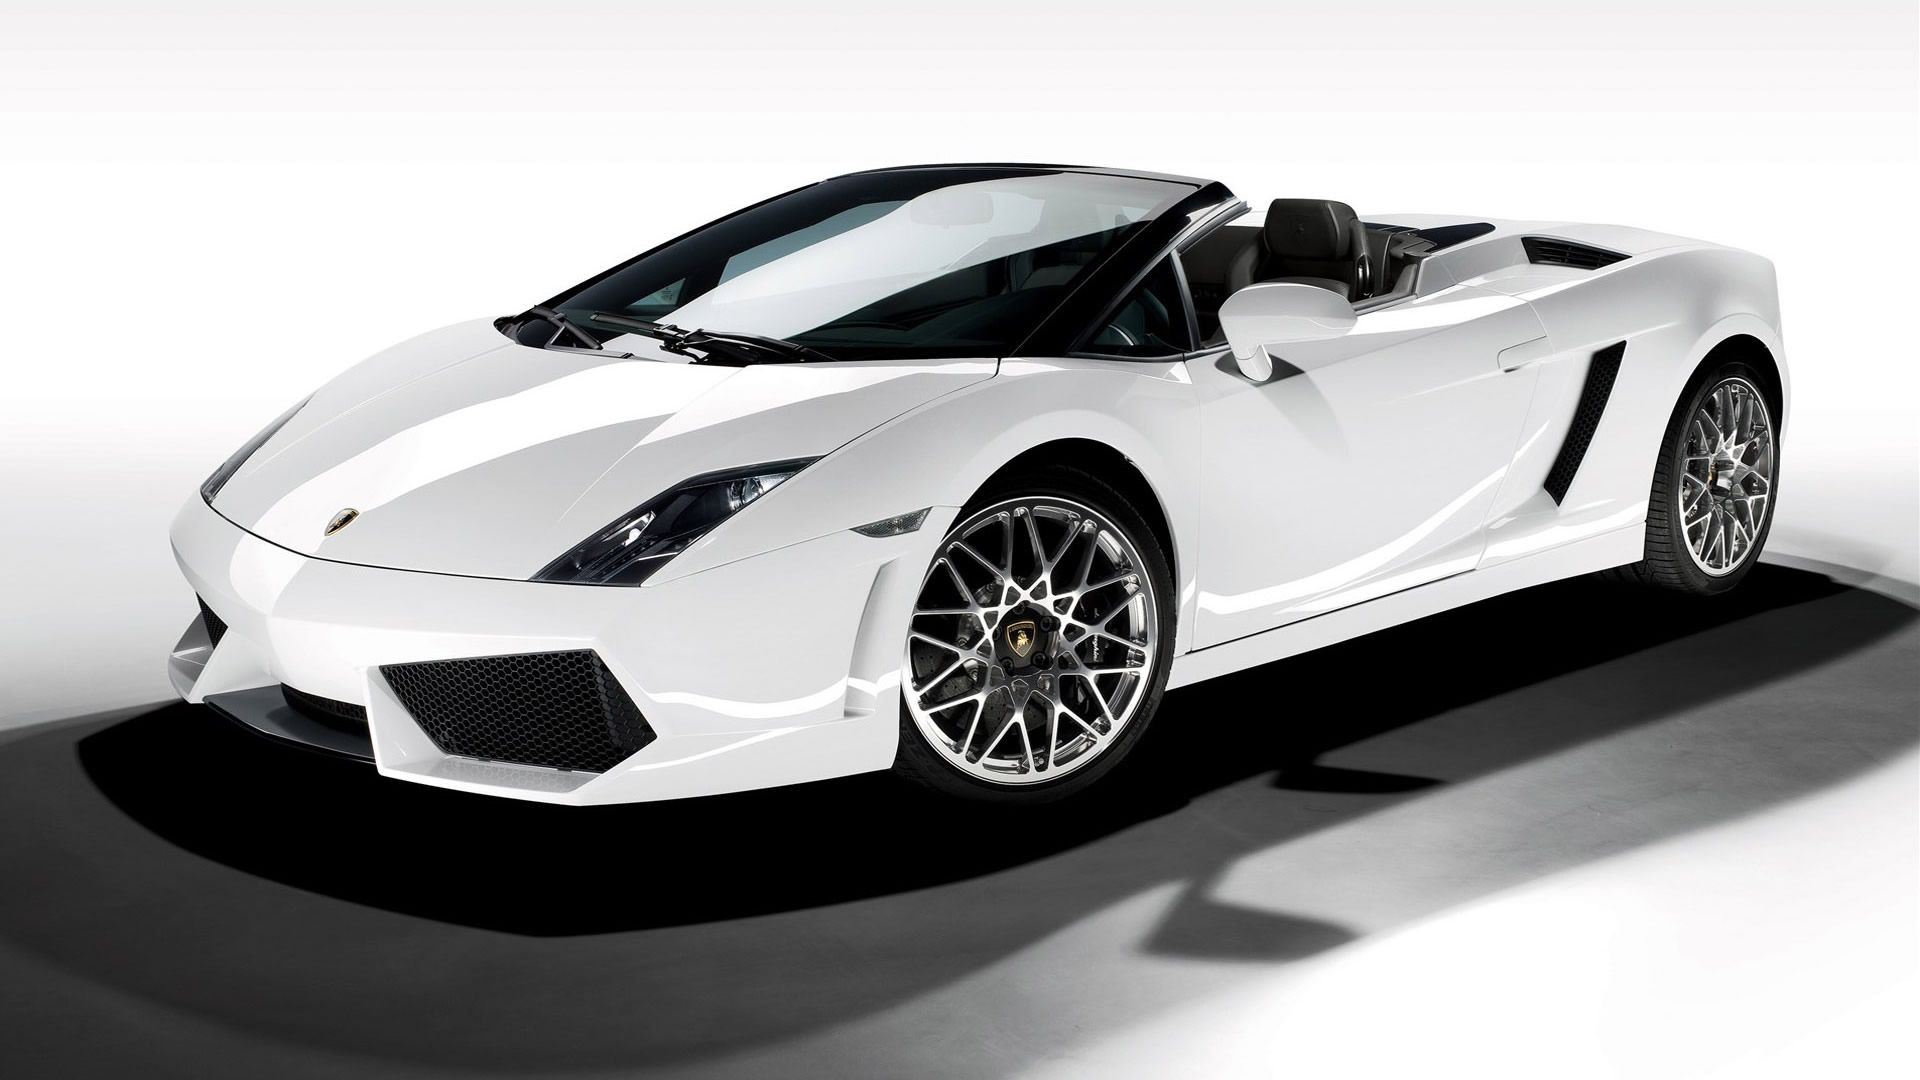 Lamborghini Stylish White Super Car Wallpaper